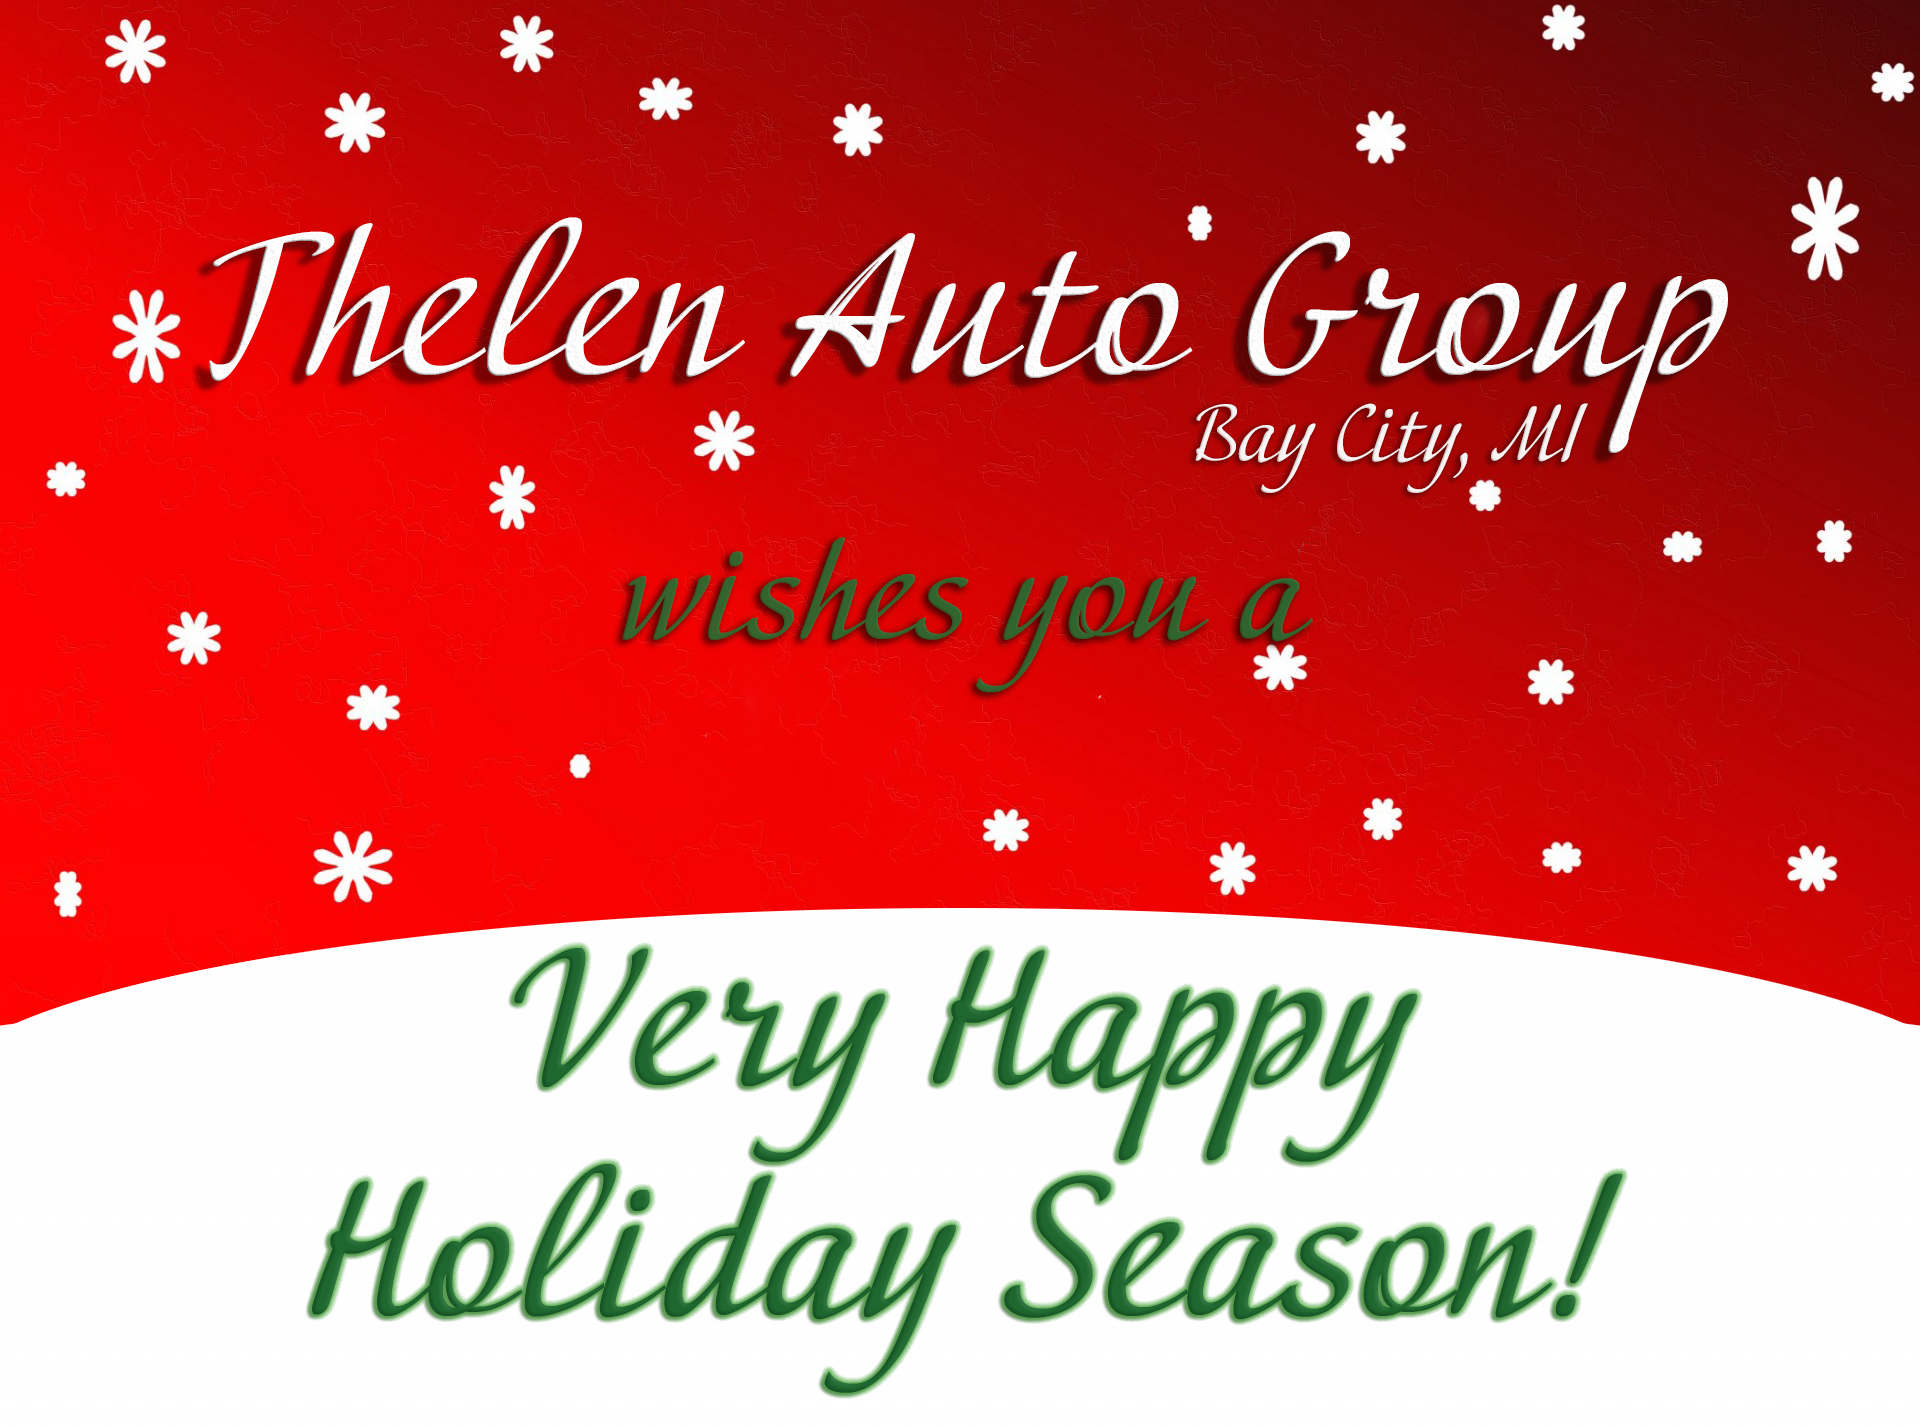 Happy Holidays From Thelen Subaru in Bay City